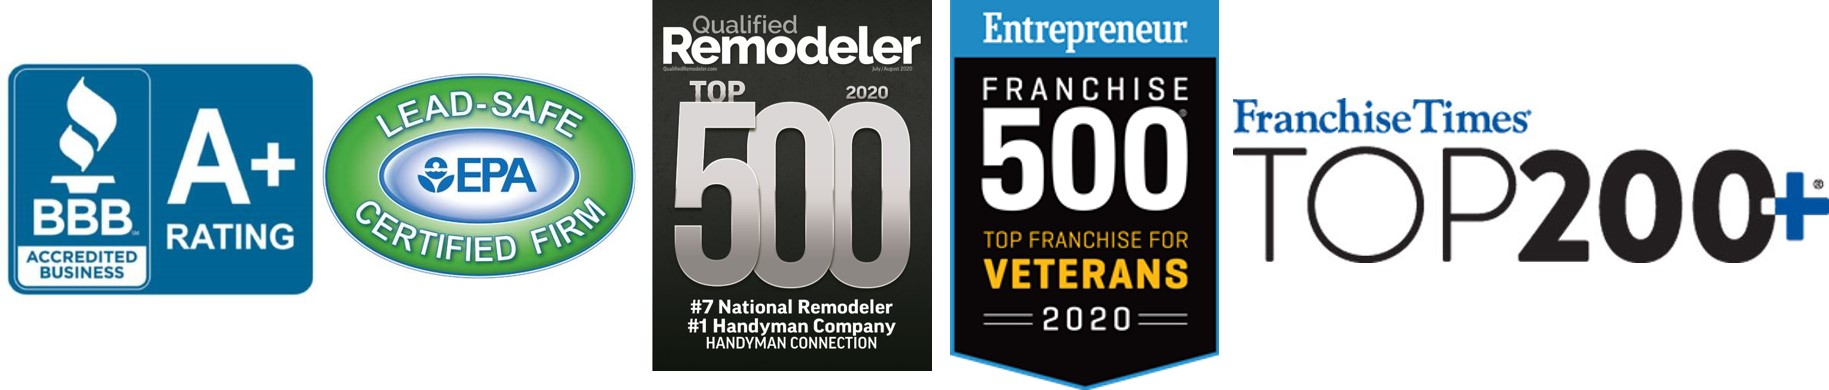 recognition from BBB EPA remodeler entrepreneur and franchise times